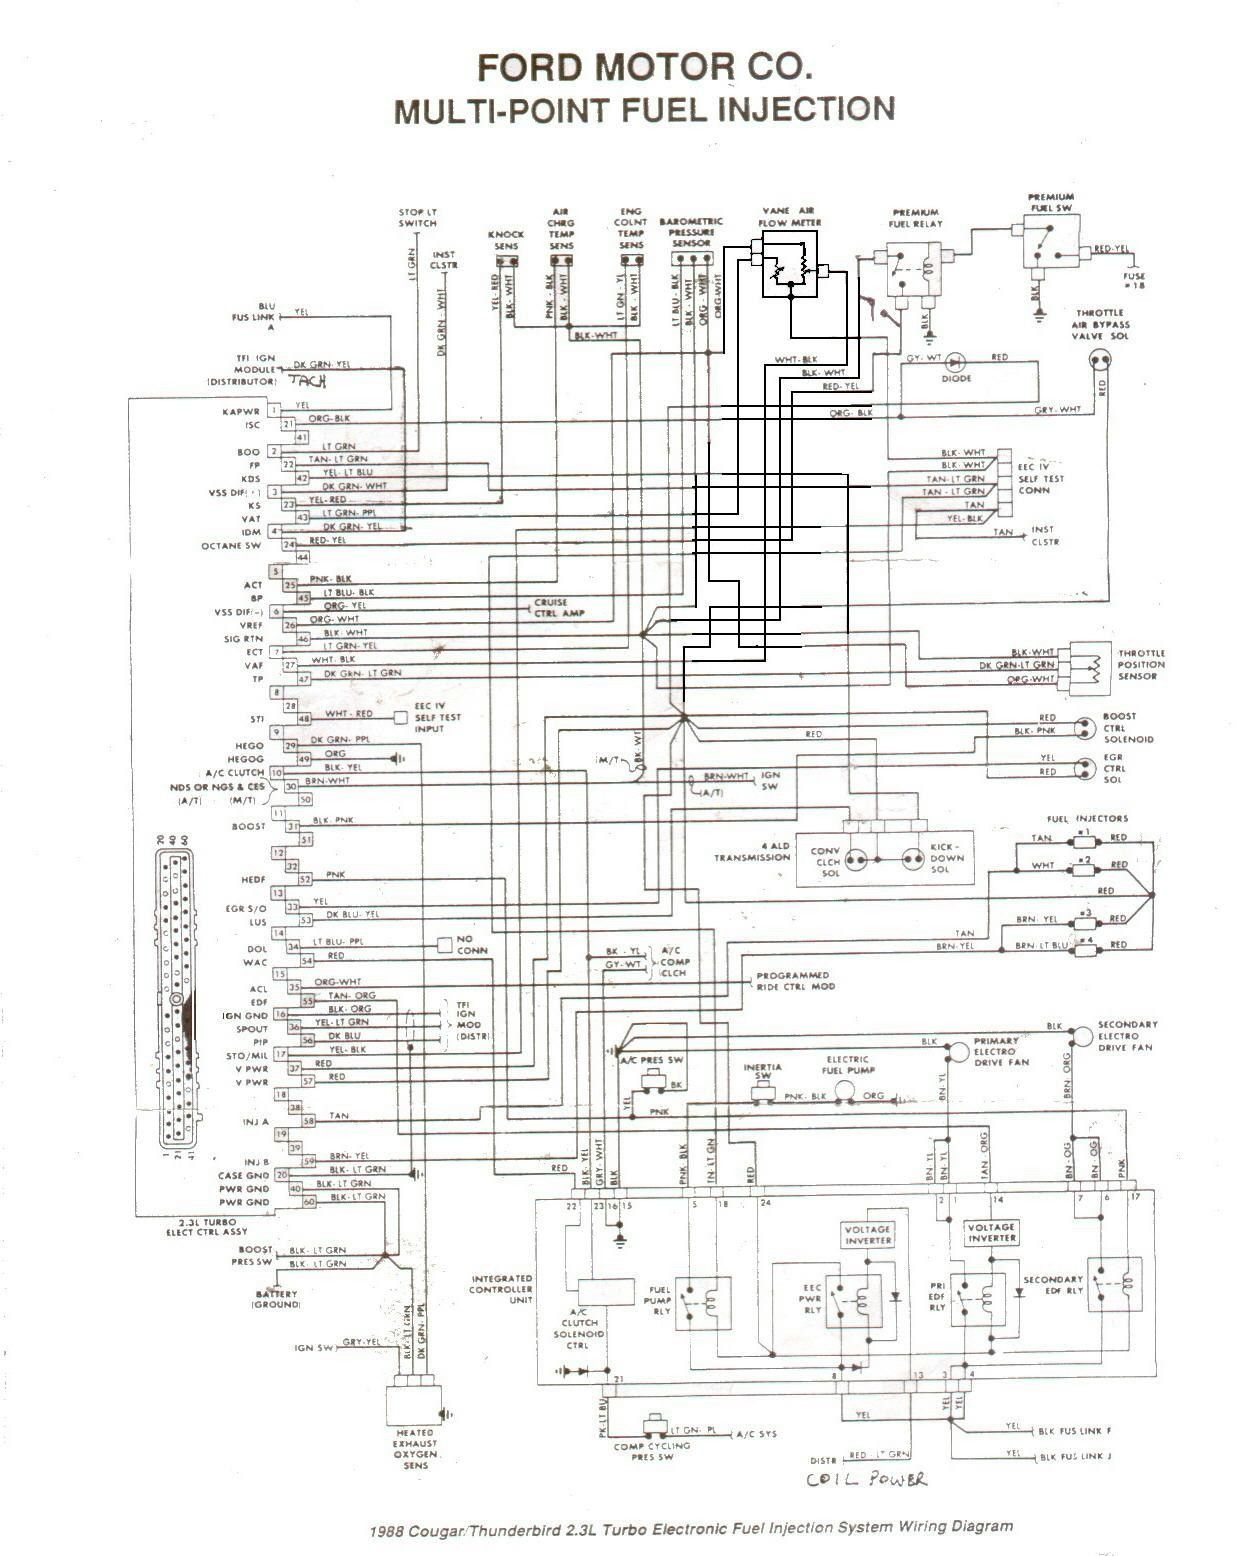 Wiring Diagram For Lights In A 1986 Ford F150 1986 F150 351w Wiring Diagram Hot Rod Forum Hotrodders Bullet 1995 Ford F150 F150 Electrical Wiring Diagram